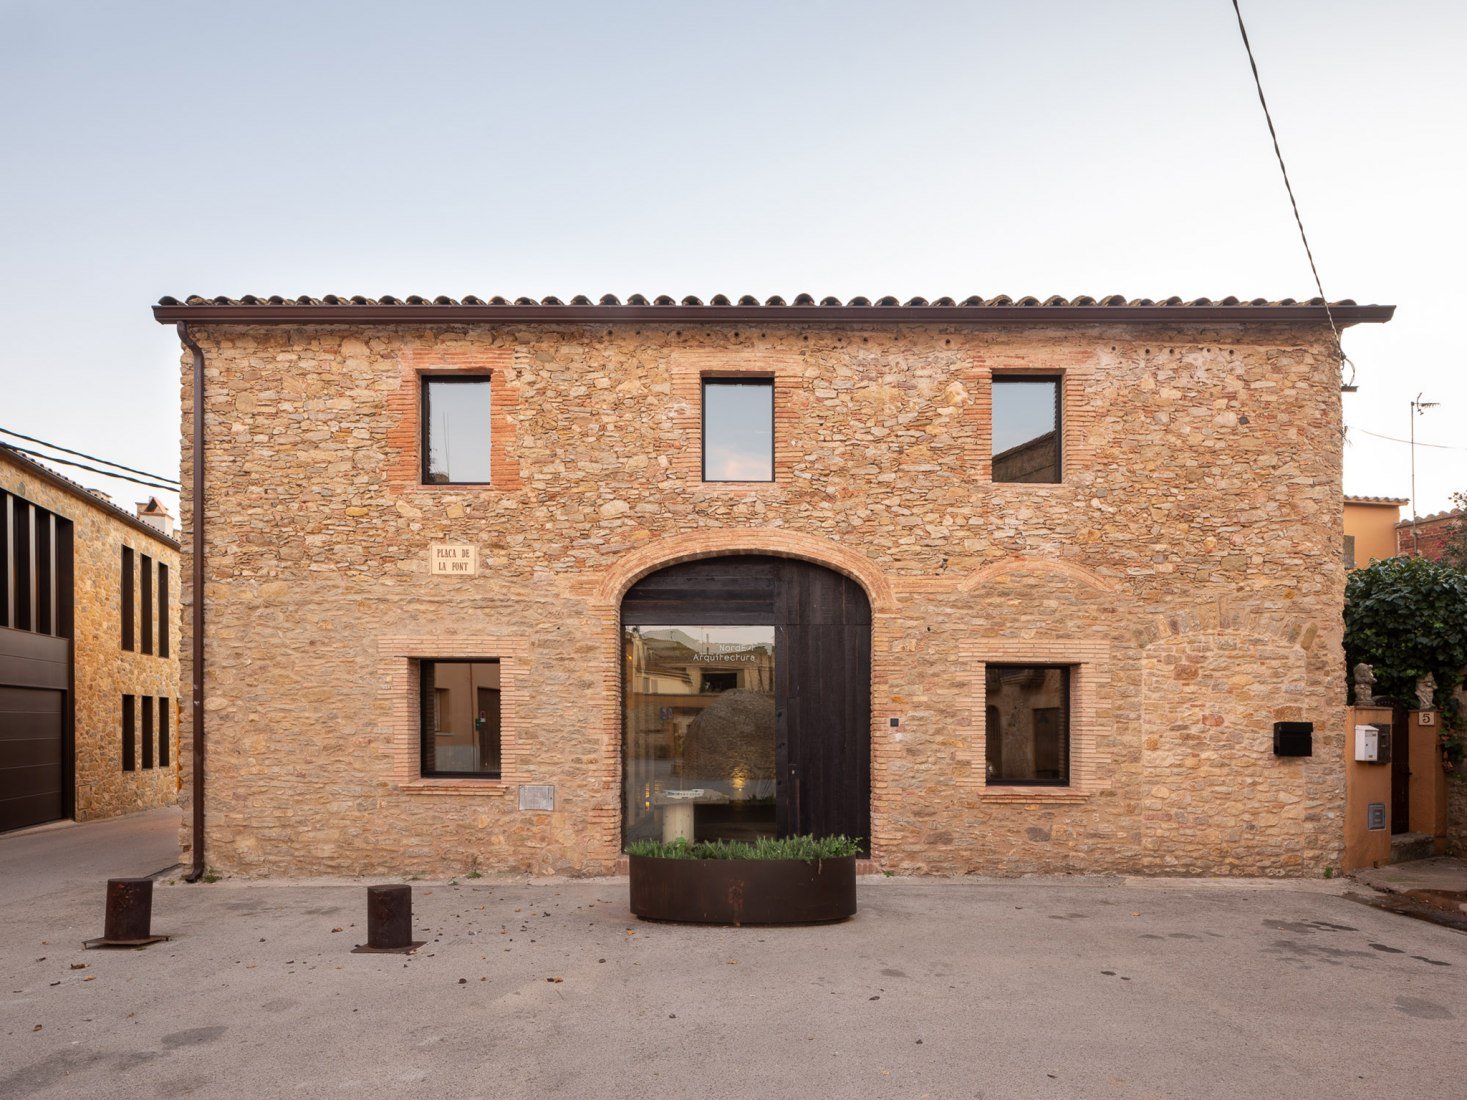 Renovation in a medieval town by Nordest arquitectura. Photograph by Filippo Poli